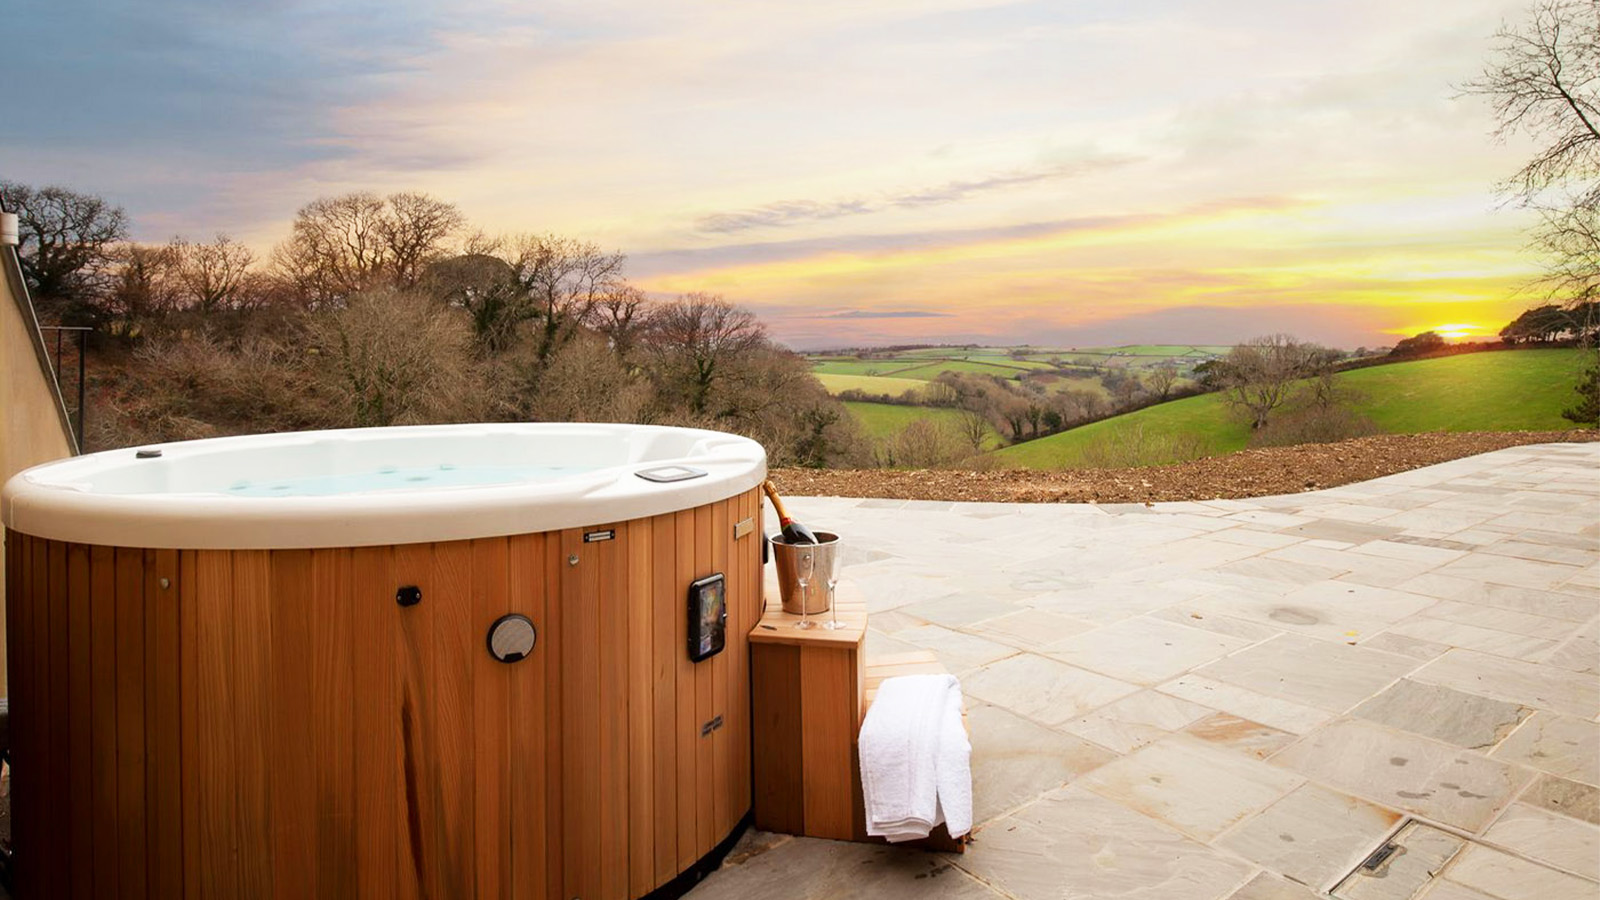 2021 S Best Hot Tub Hire London Add To Event